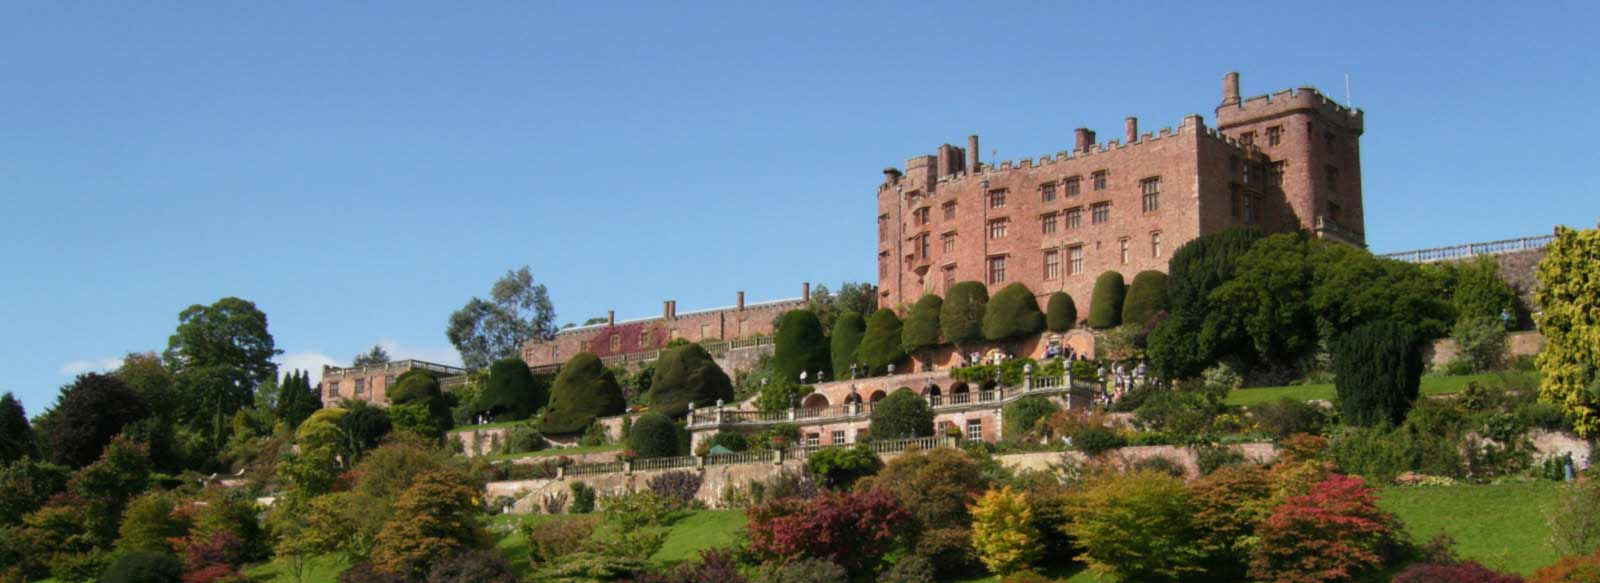 Powis castle national Trust